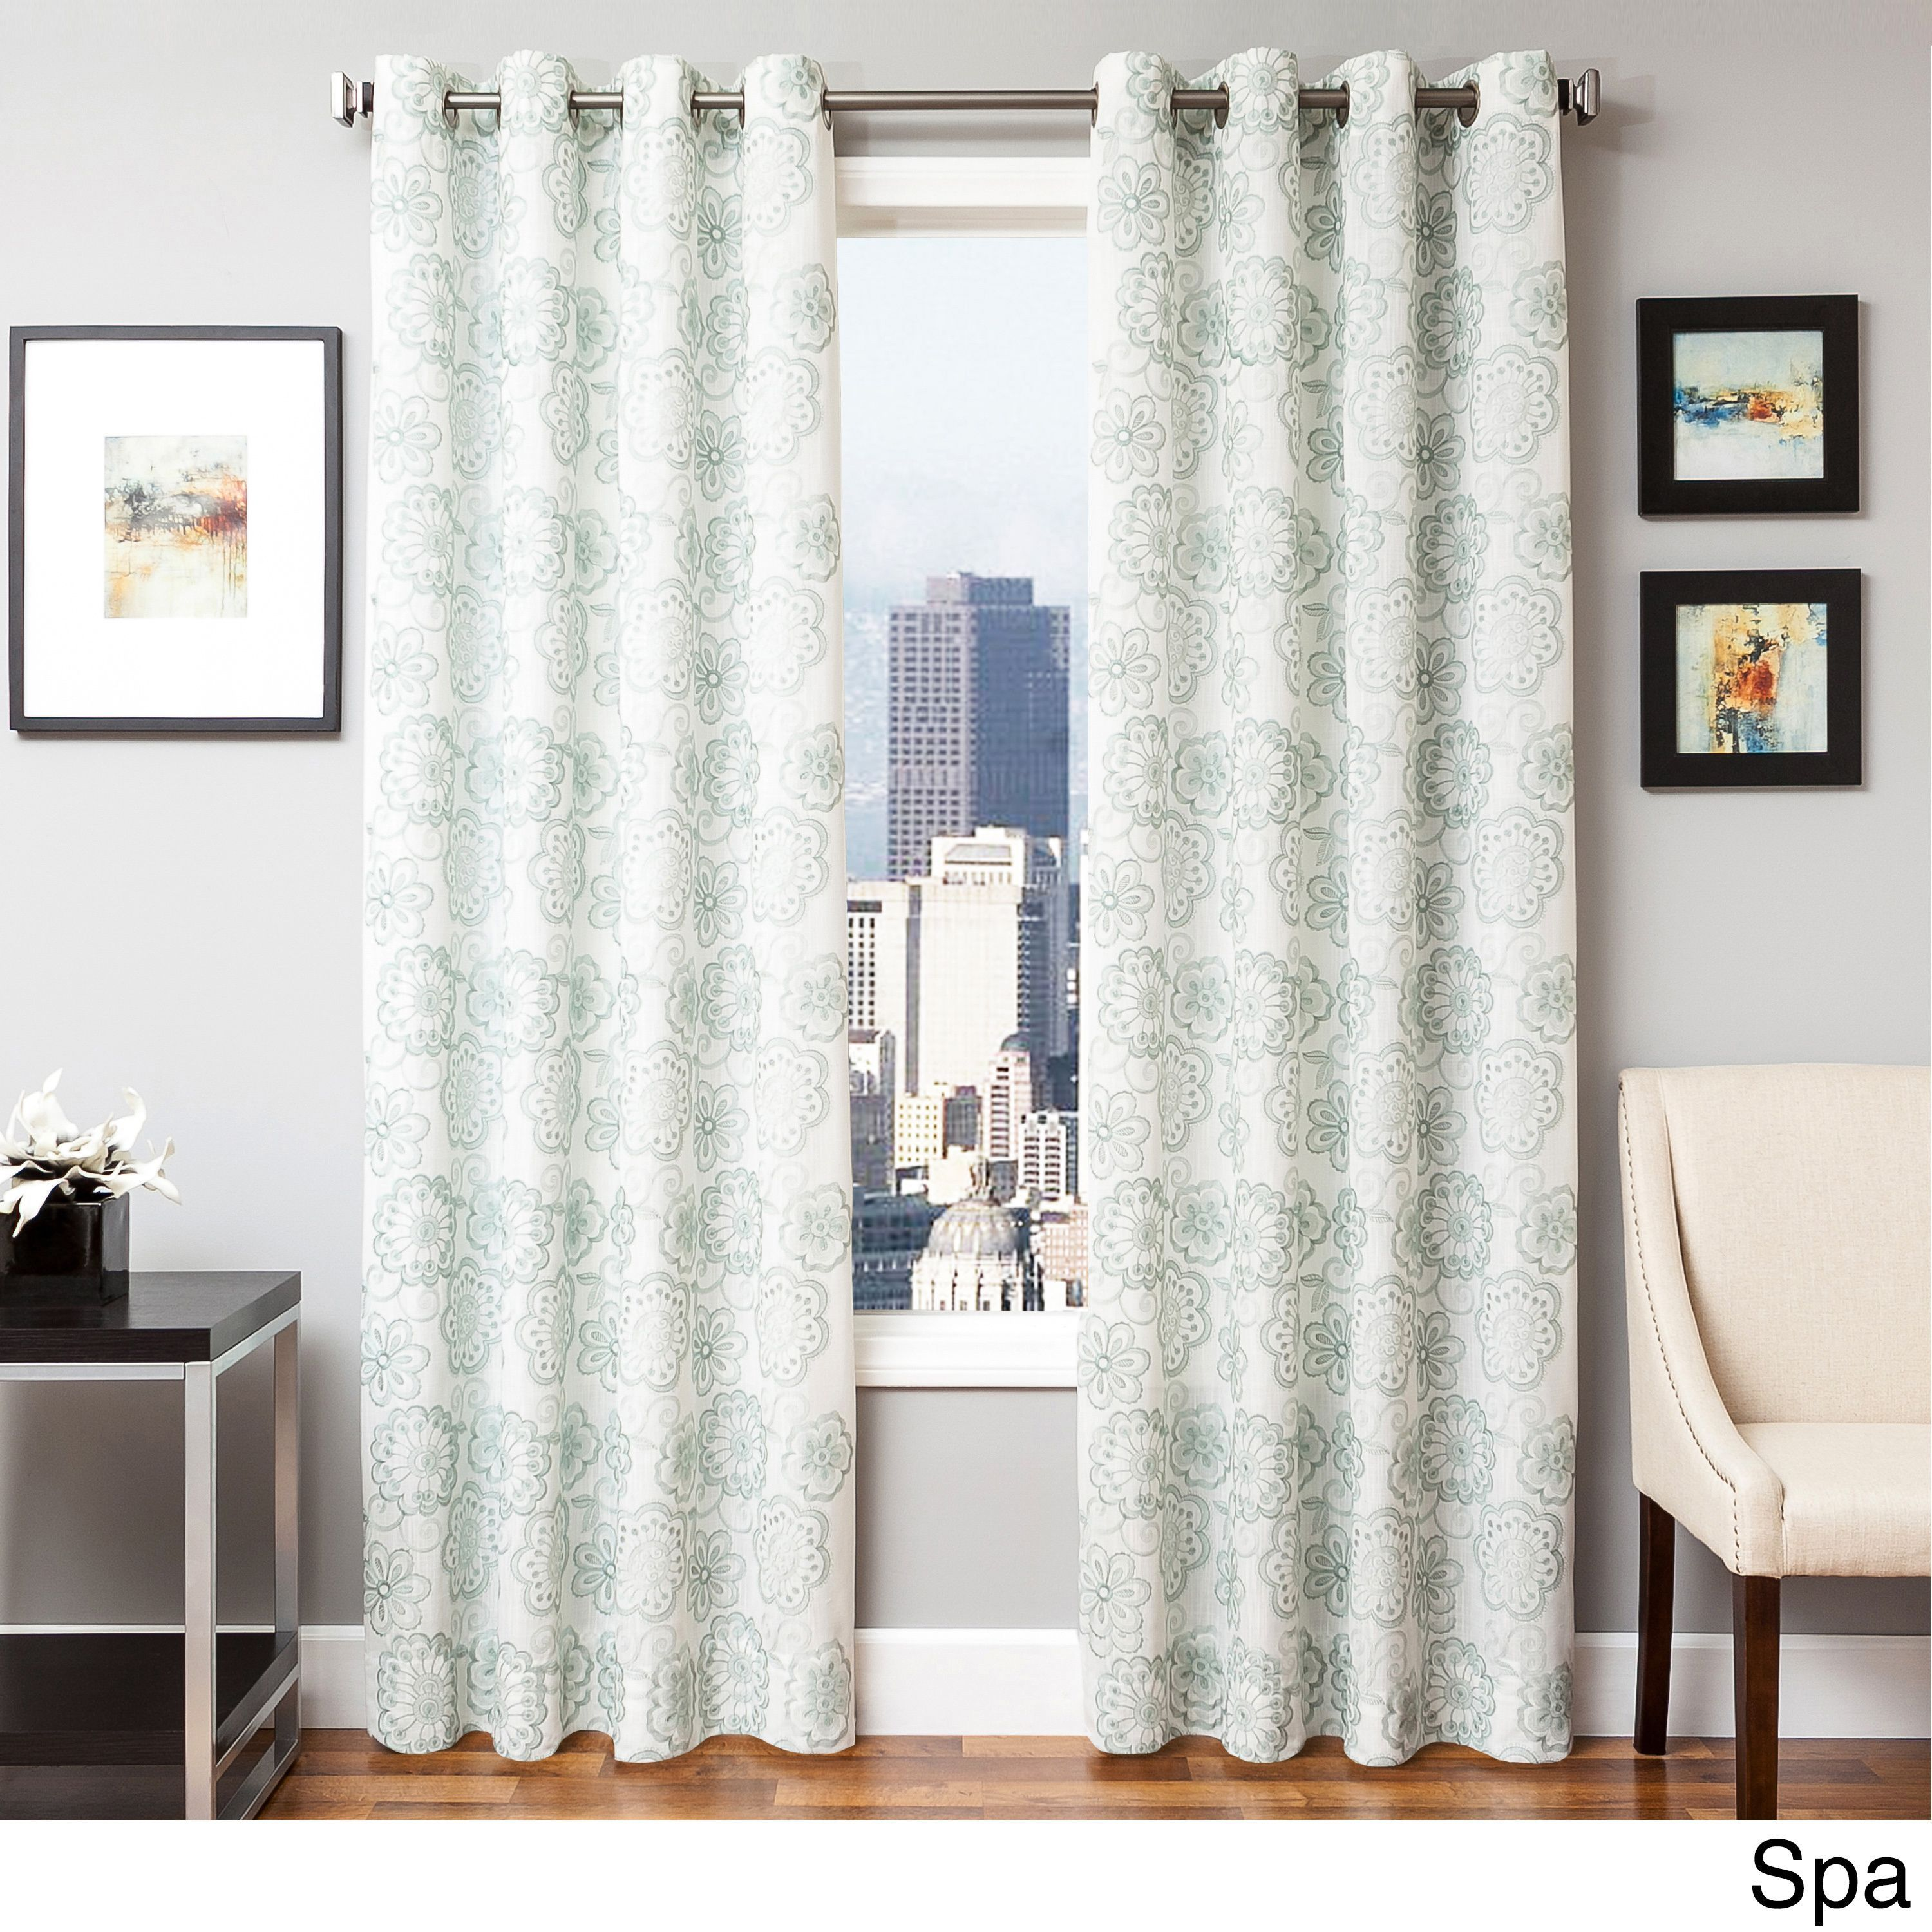 Softline Essex Embroidered Curtain Panel (SPA GTM 96), Blue, Size 55 x 96 (Polyester, Floral)